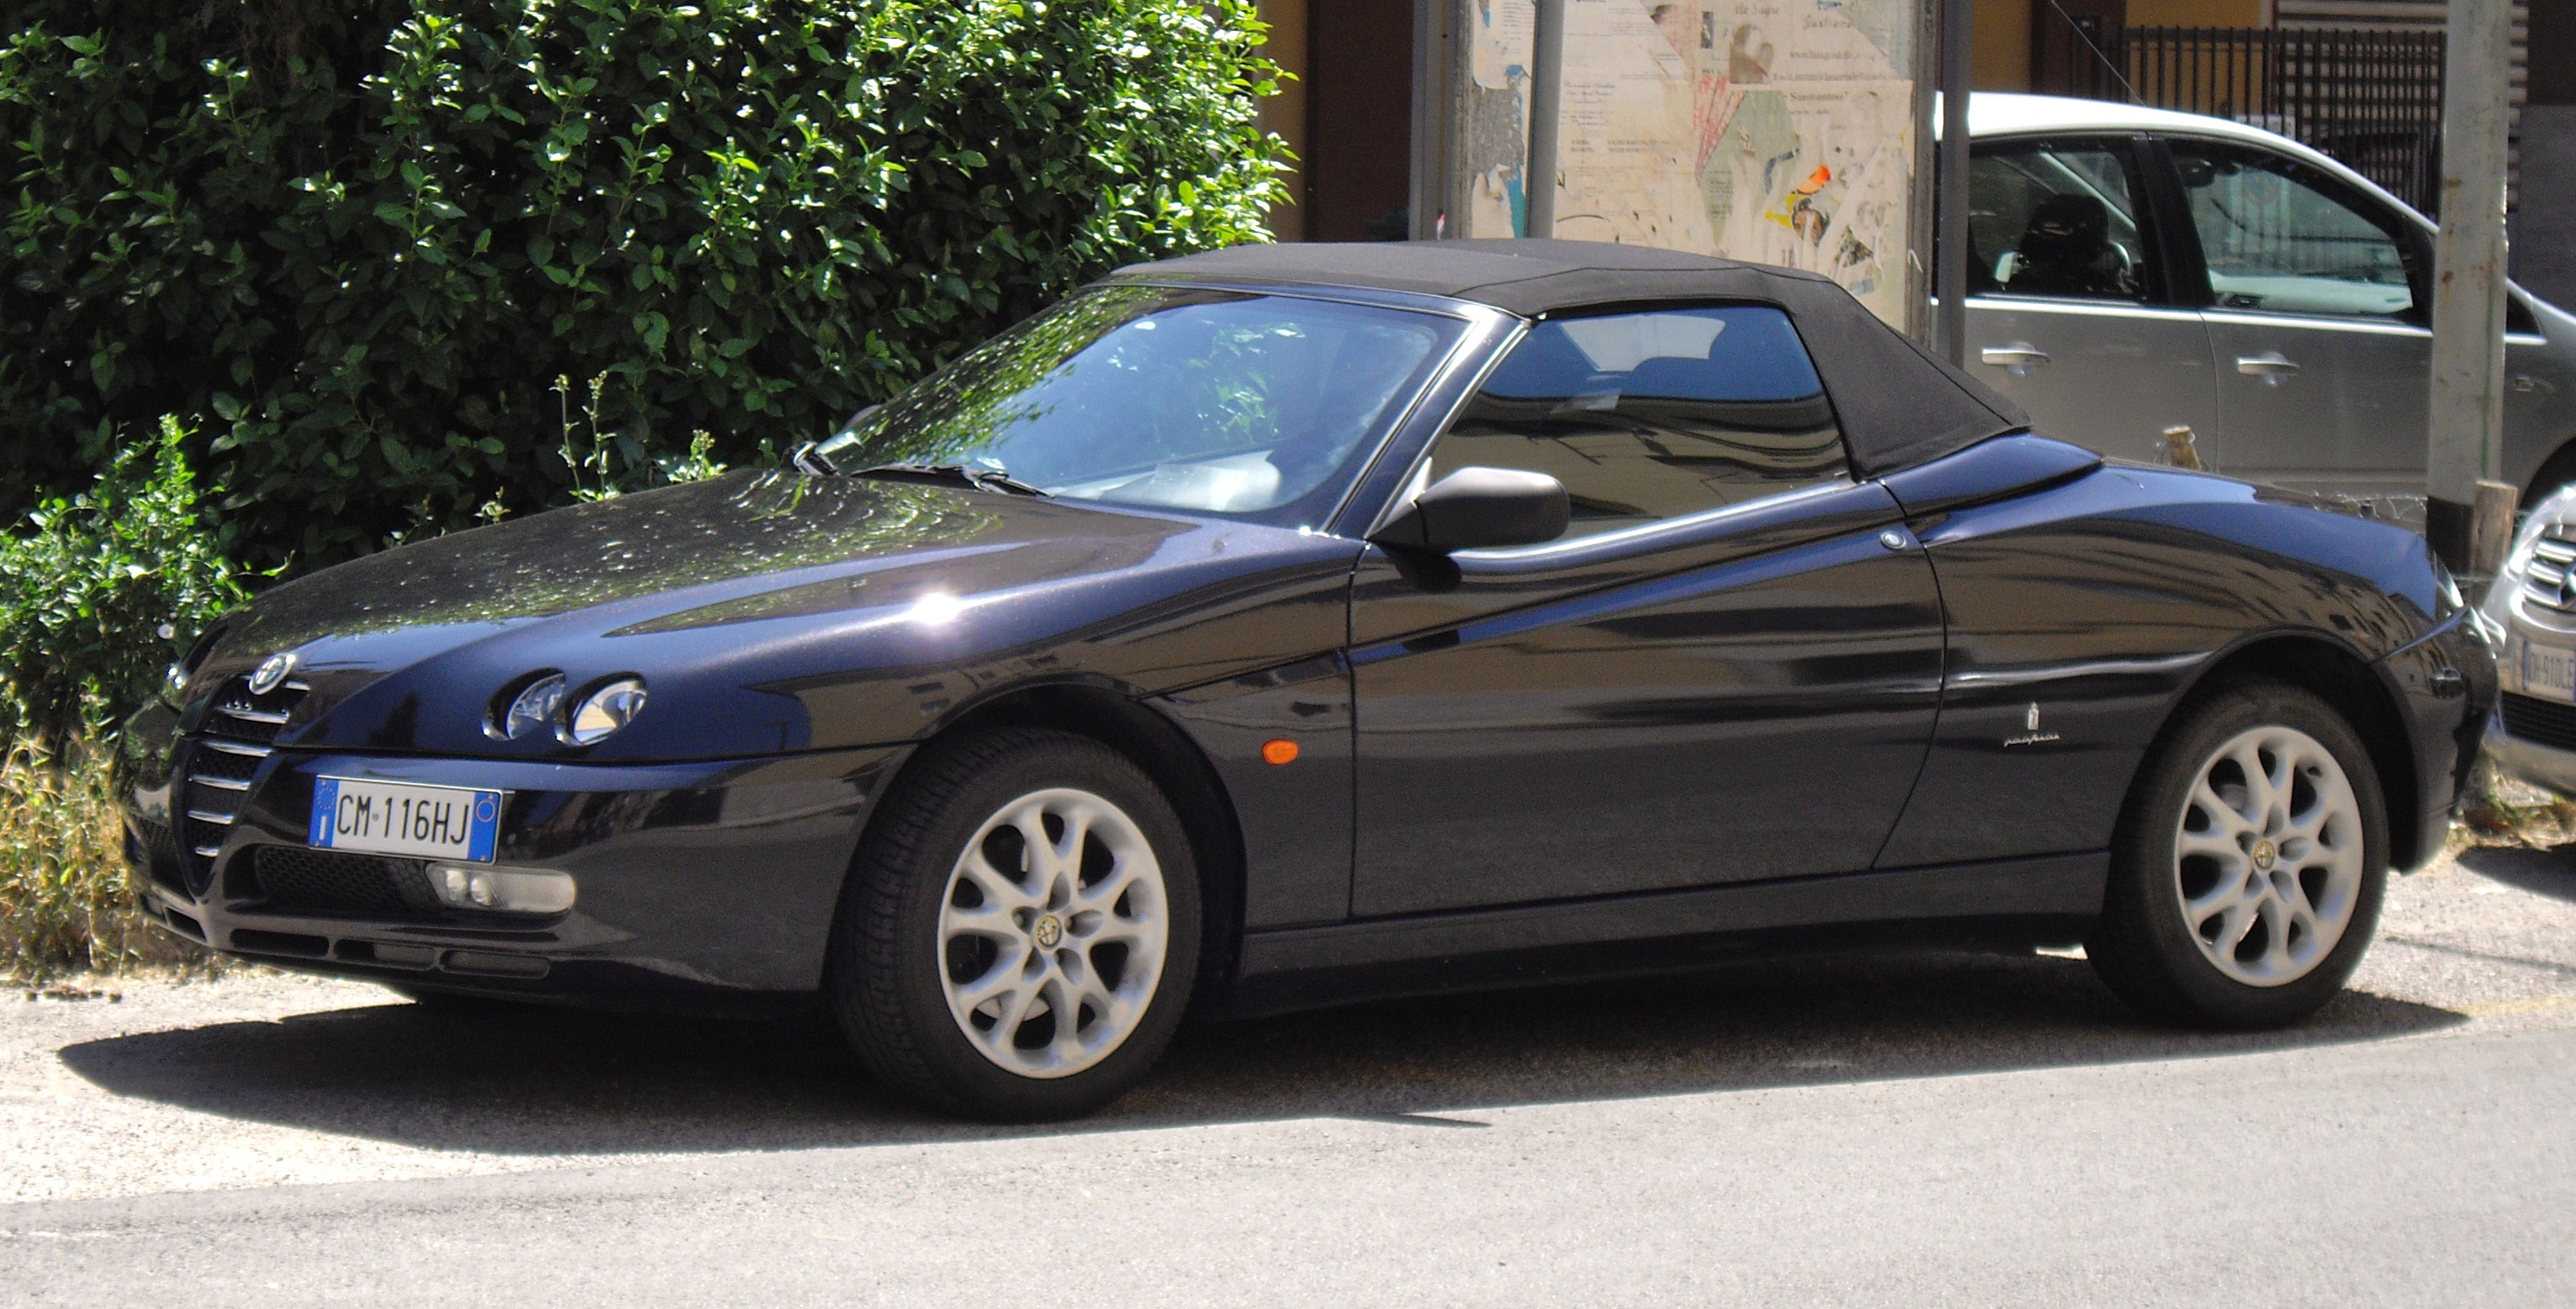 file alfa romeo spider 916 facelift jpg wikimedia commons. Black Bedroom Furniture Sets. Home Design Ideas